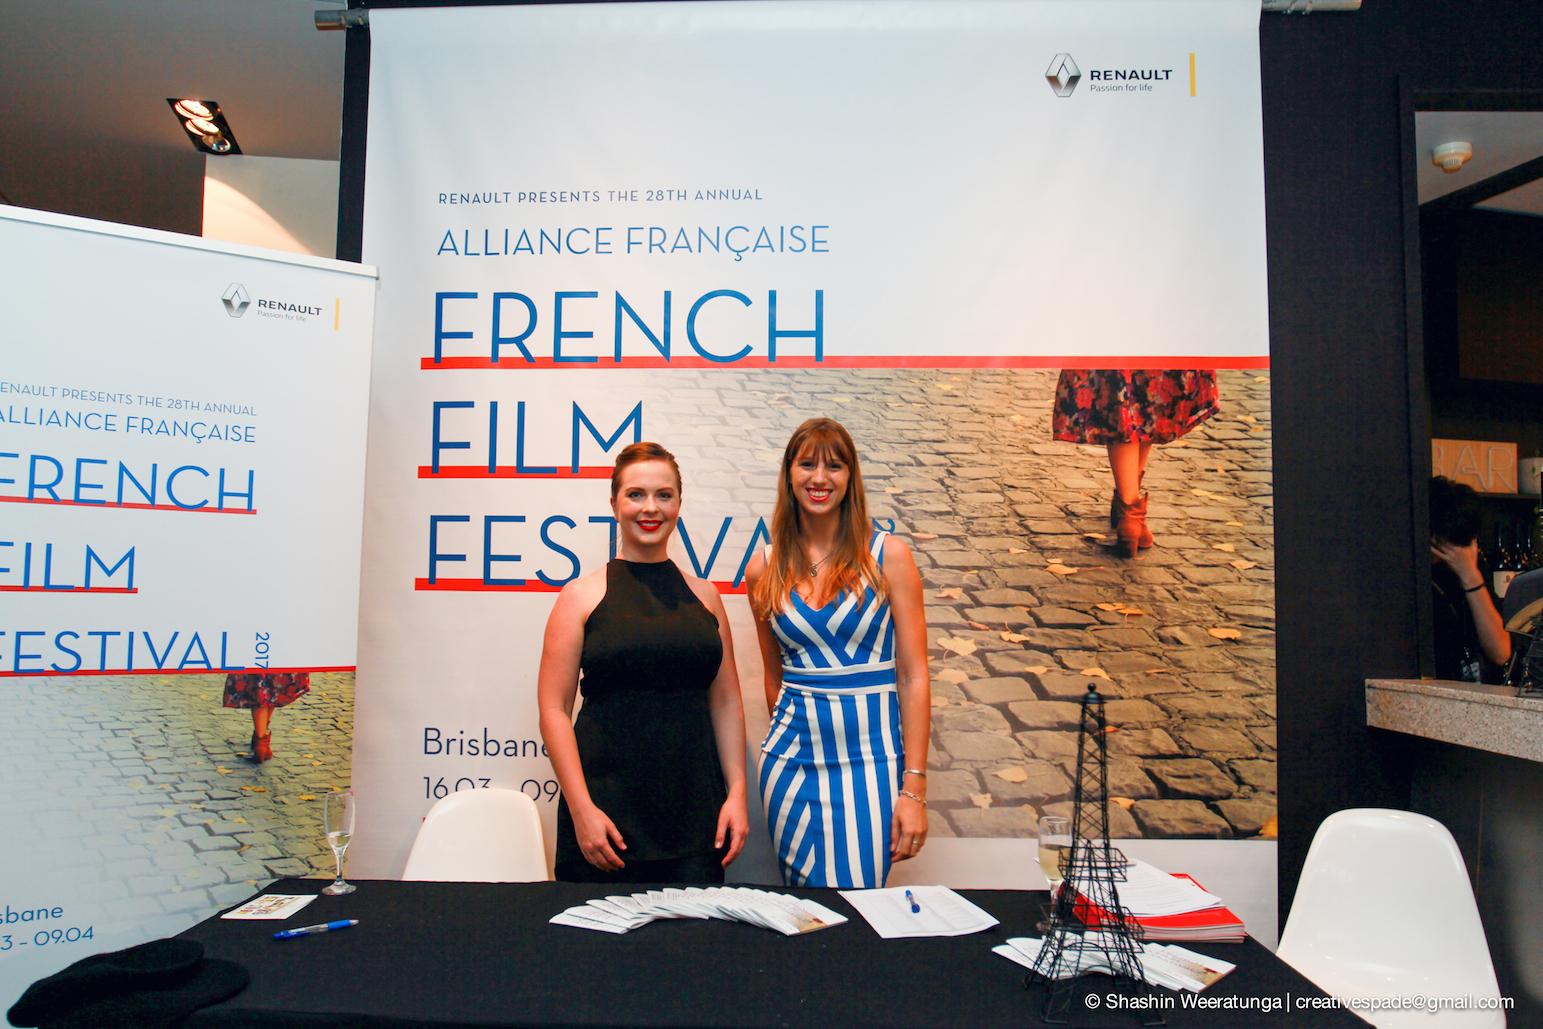 Alliance Francaise French Film Festival This Magnificent Life